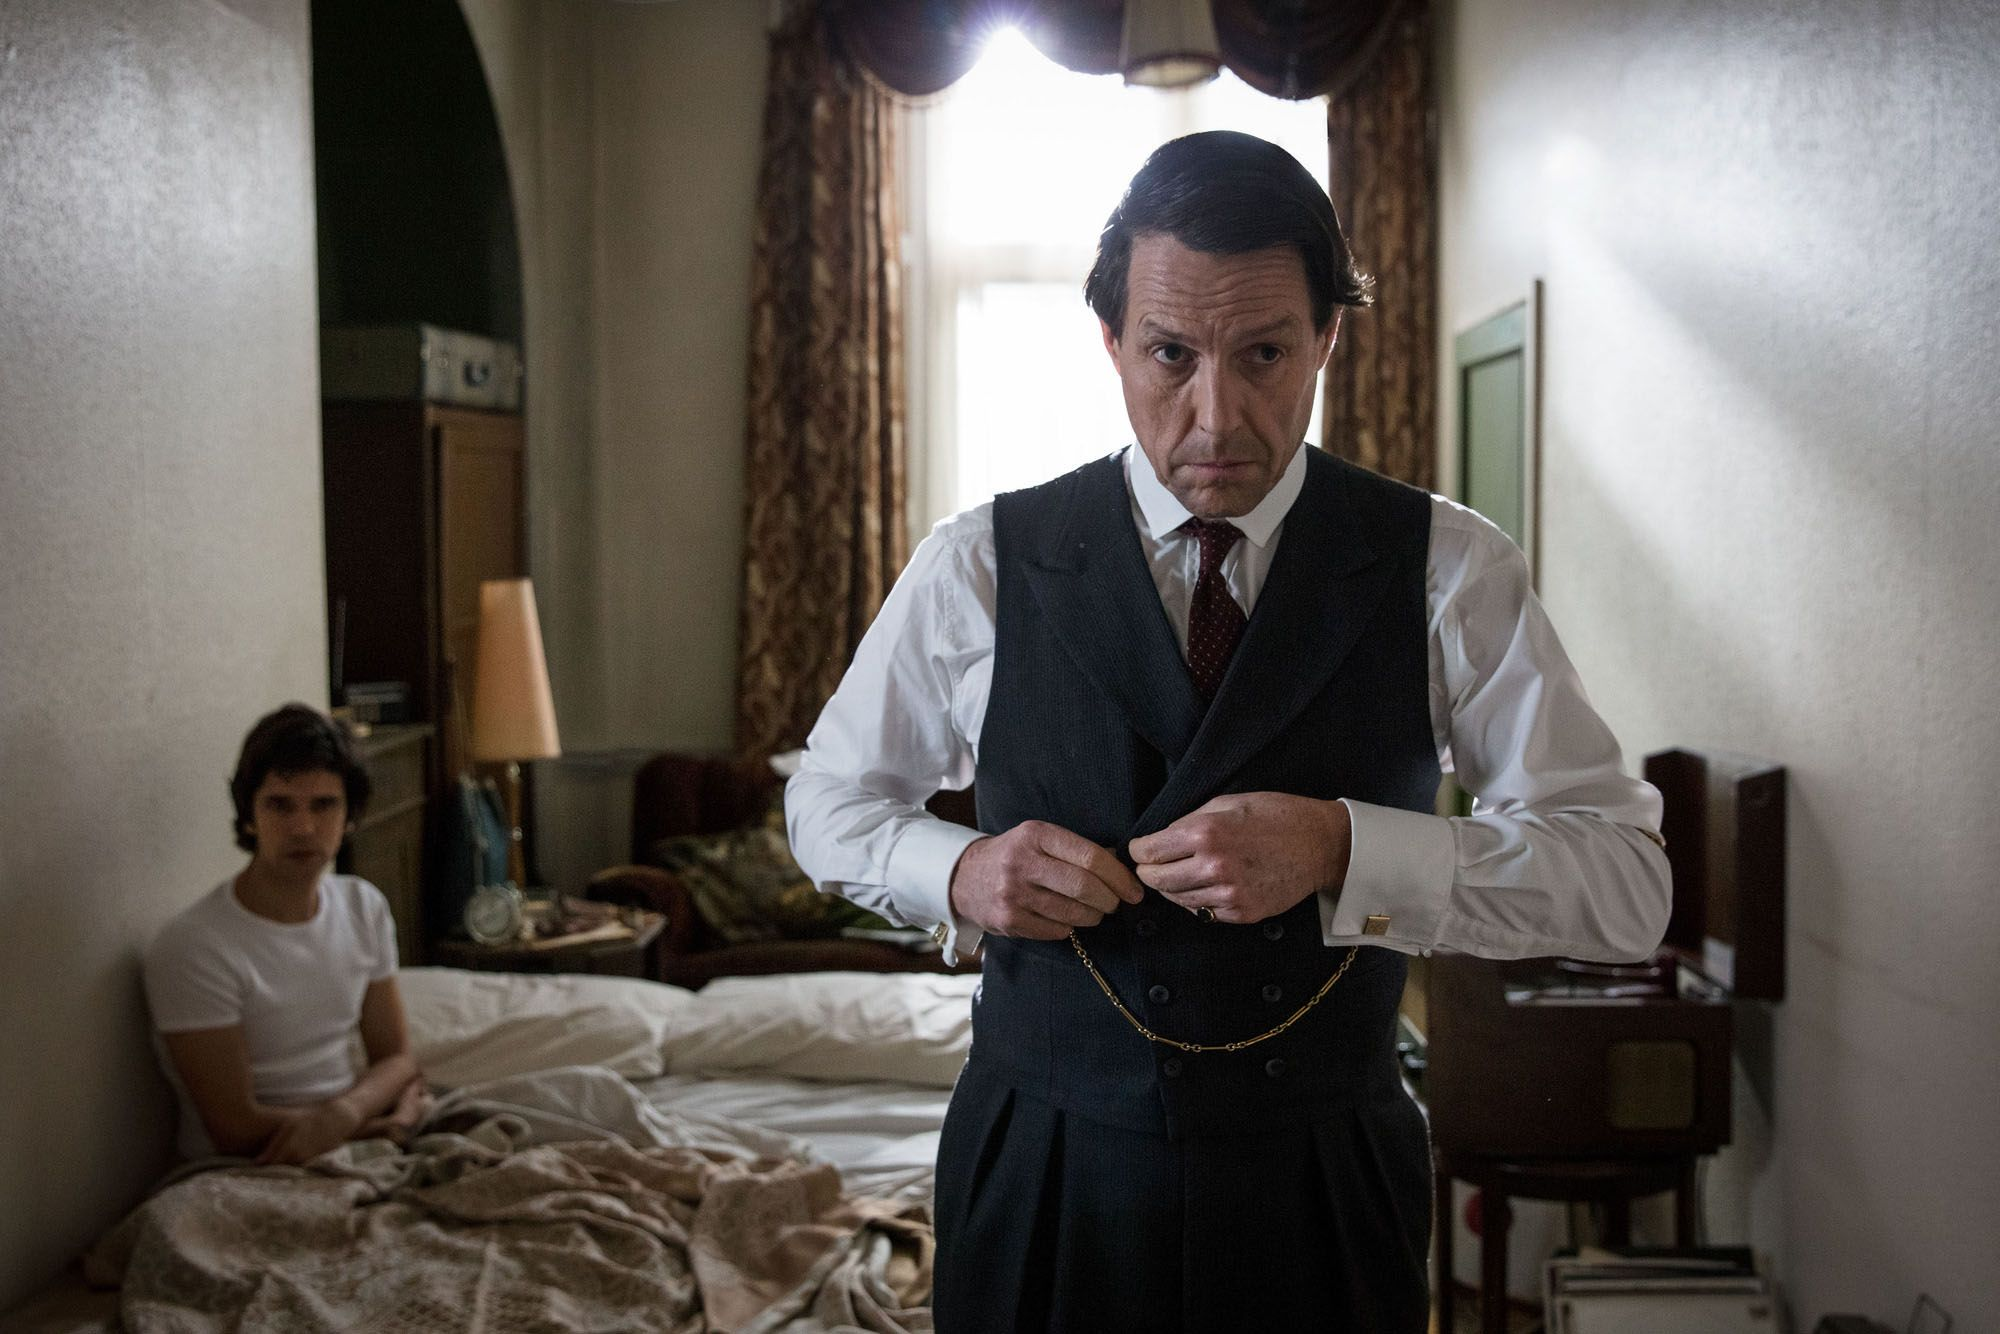 Where to Watch 'A Very English Scandal' Online - Is A Very English